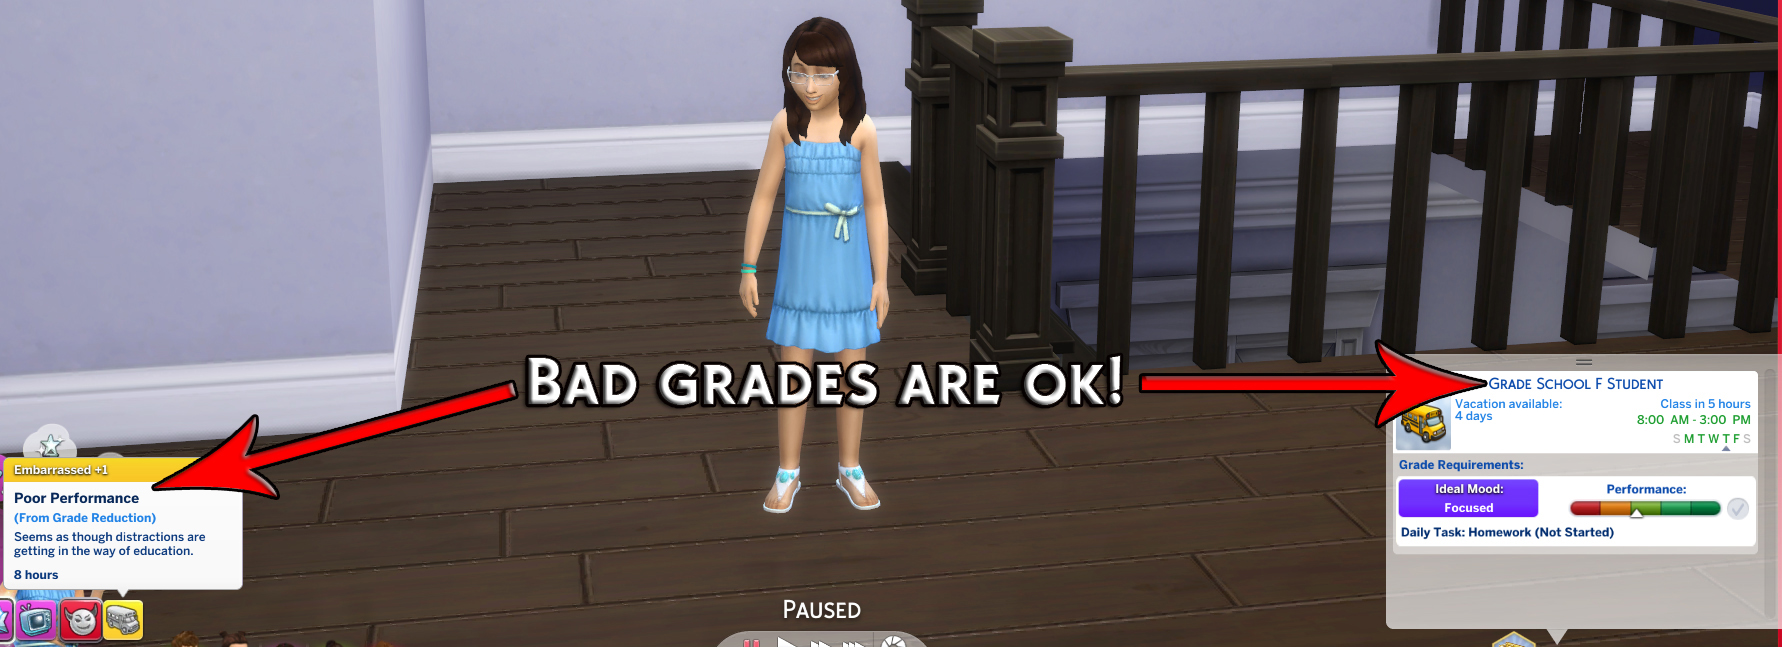 bad grades are ok picture.jpg